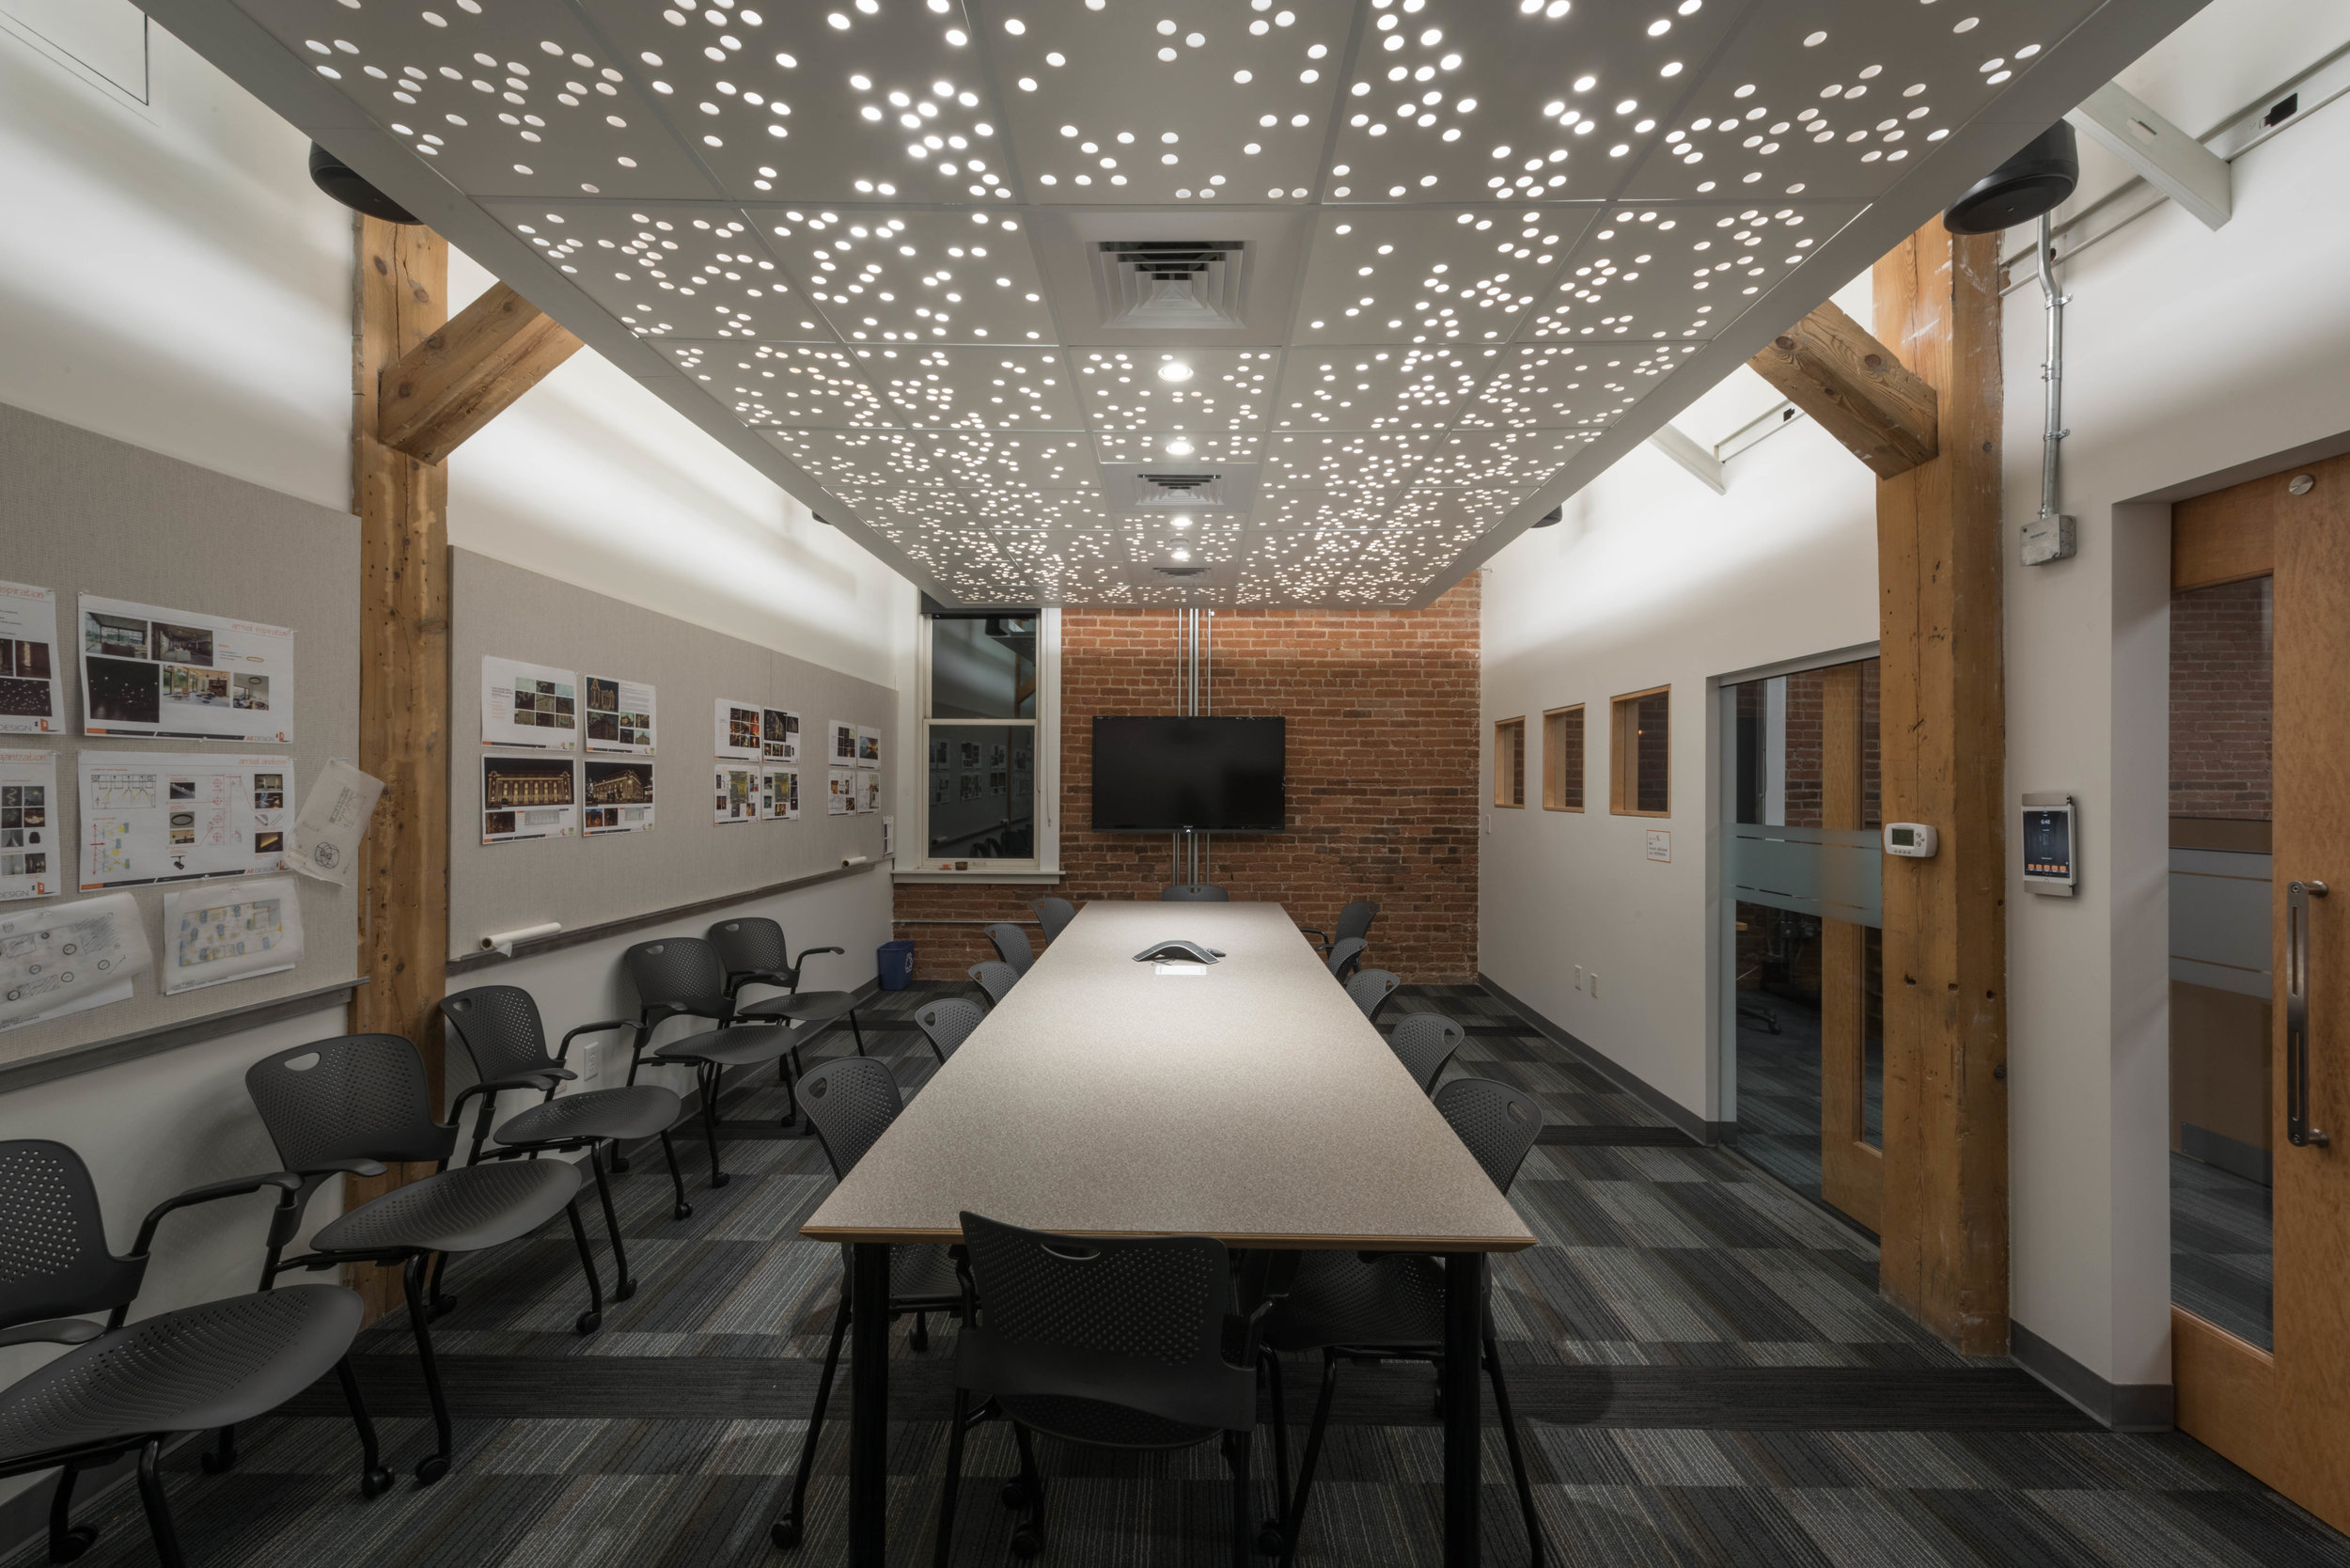 AE Design - Conference Room Scenes and Dimming (2).jpg